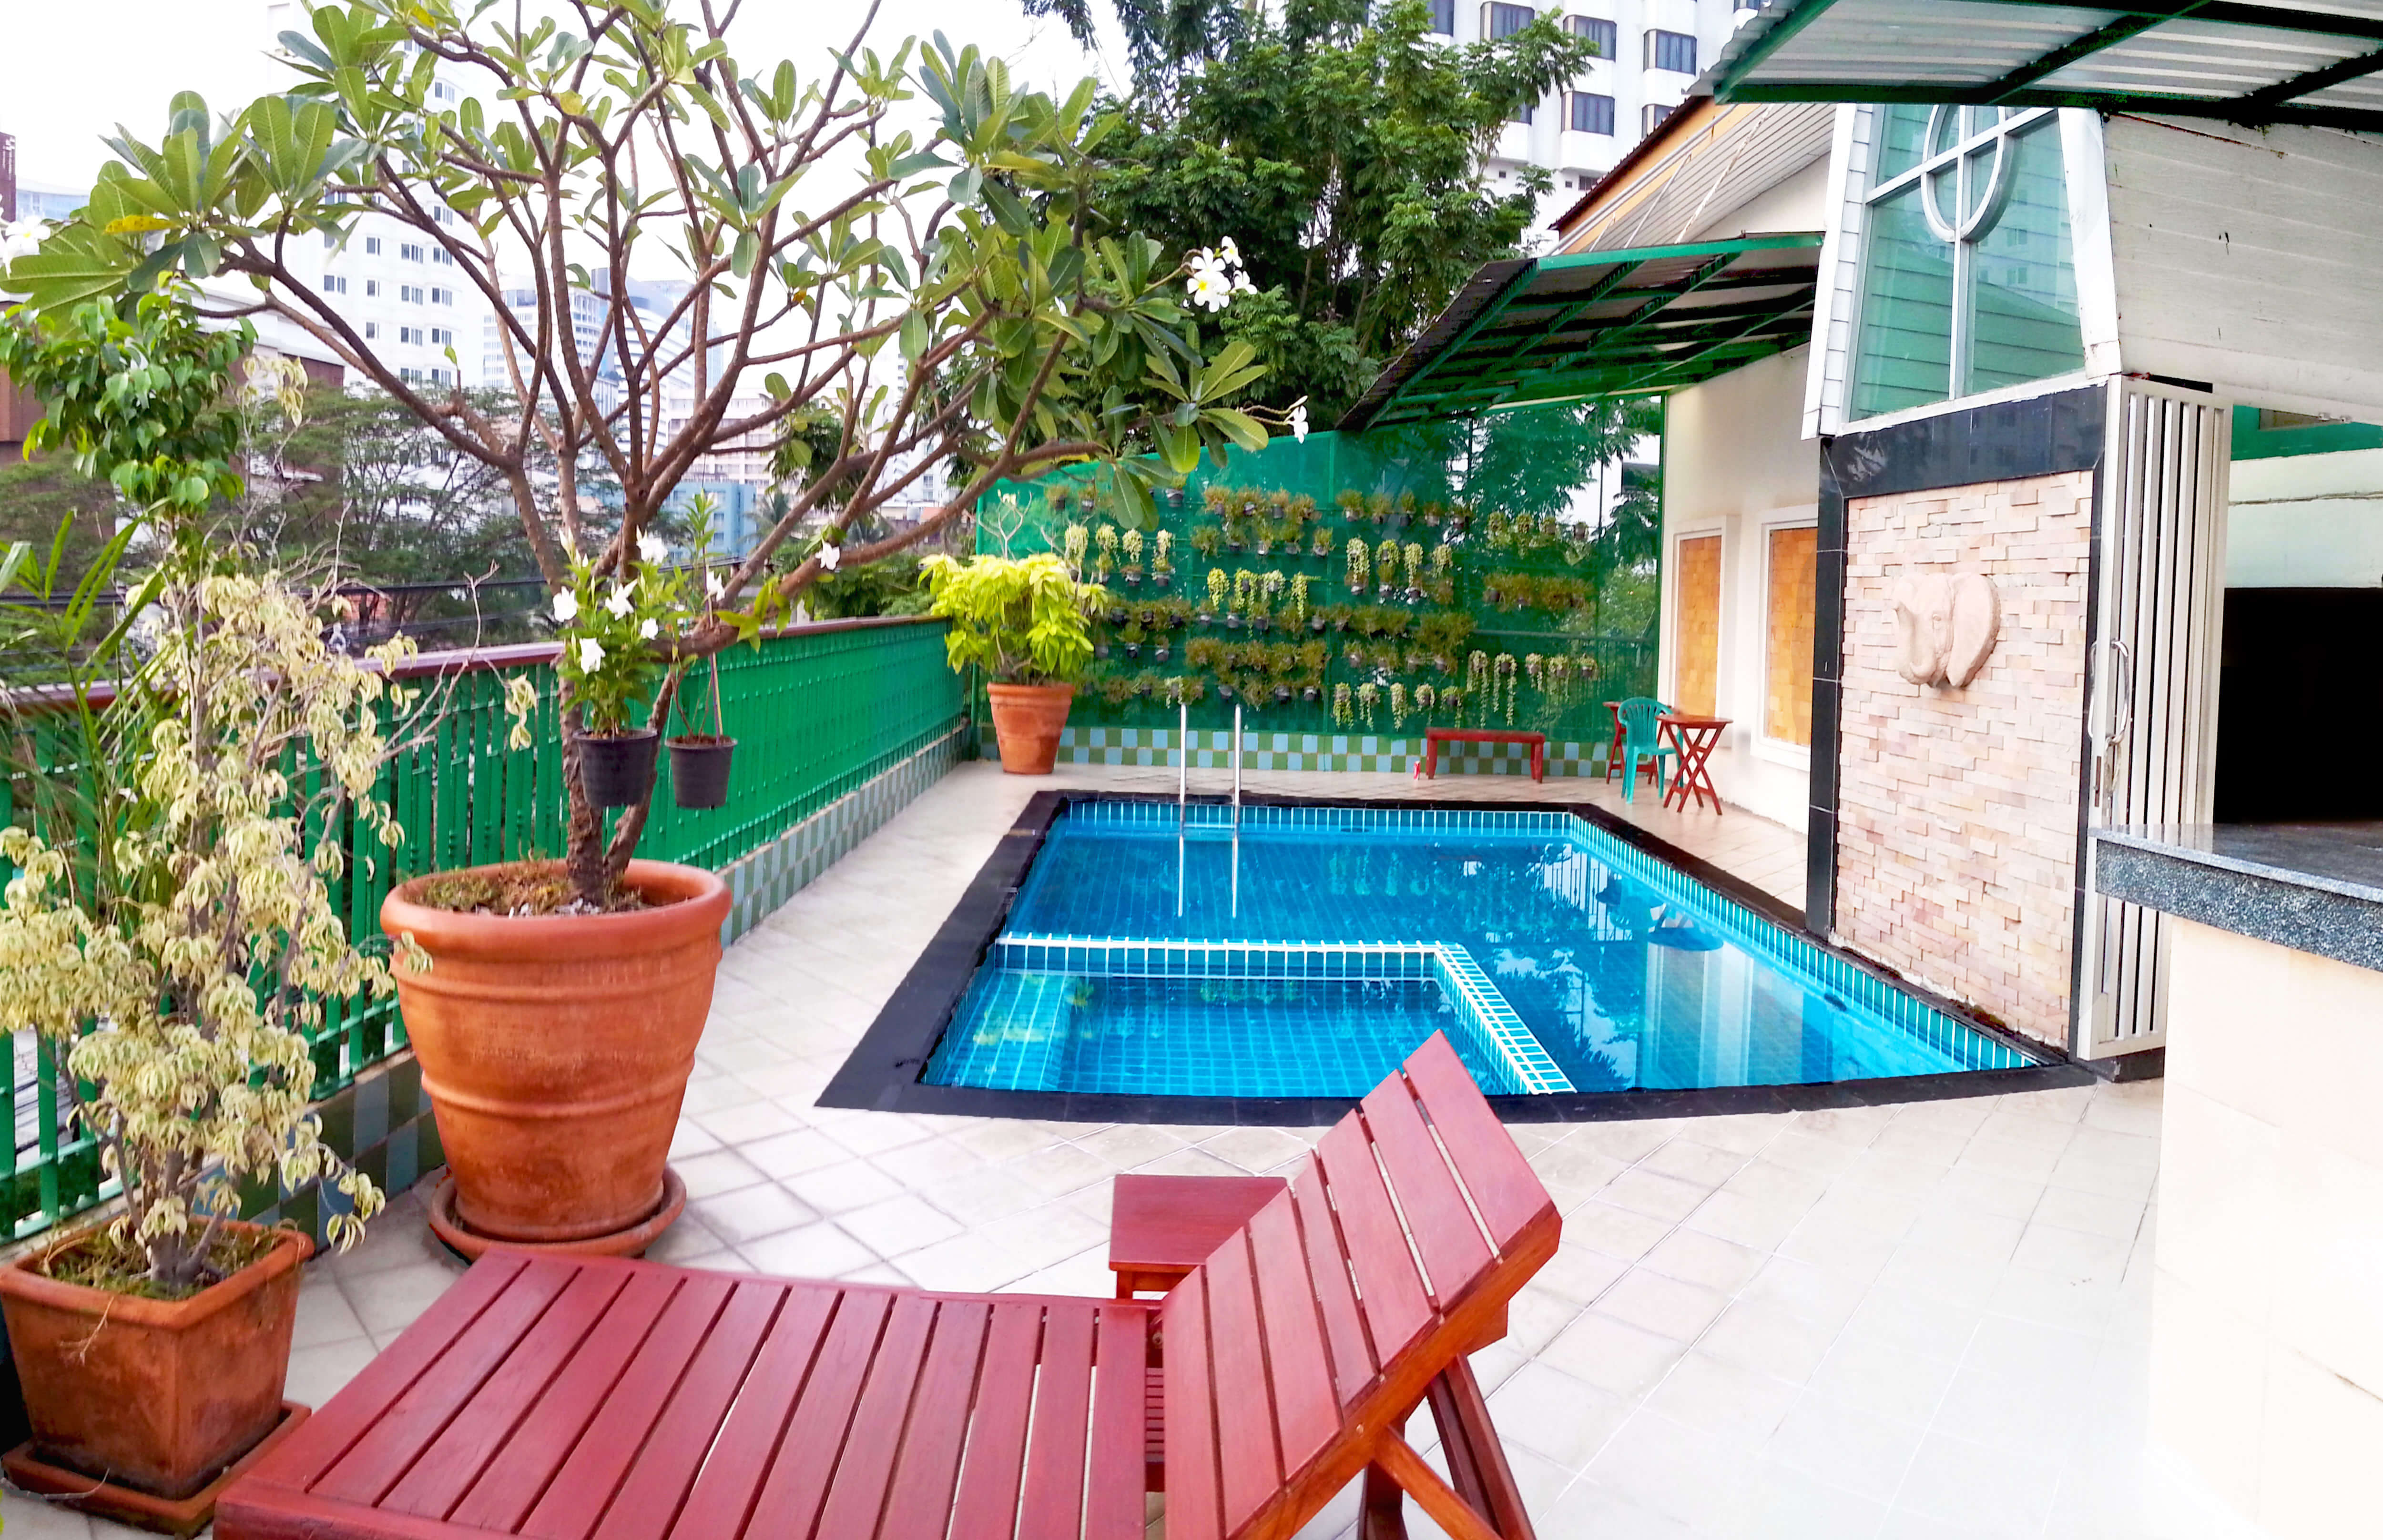 nana hotel bangkok's 3rd floor swimming pool